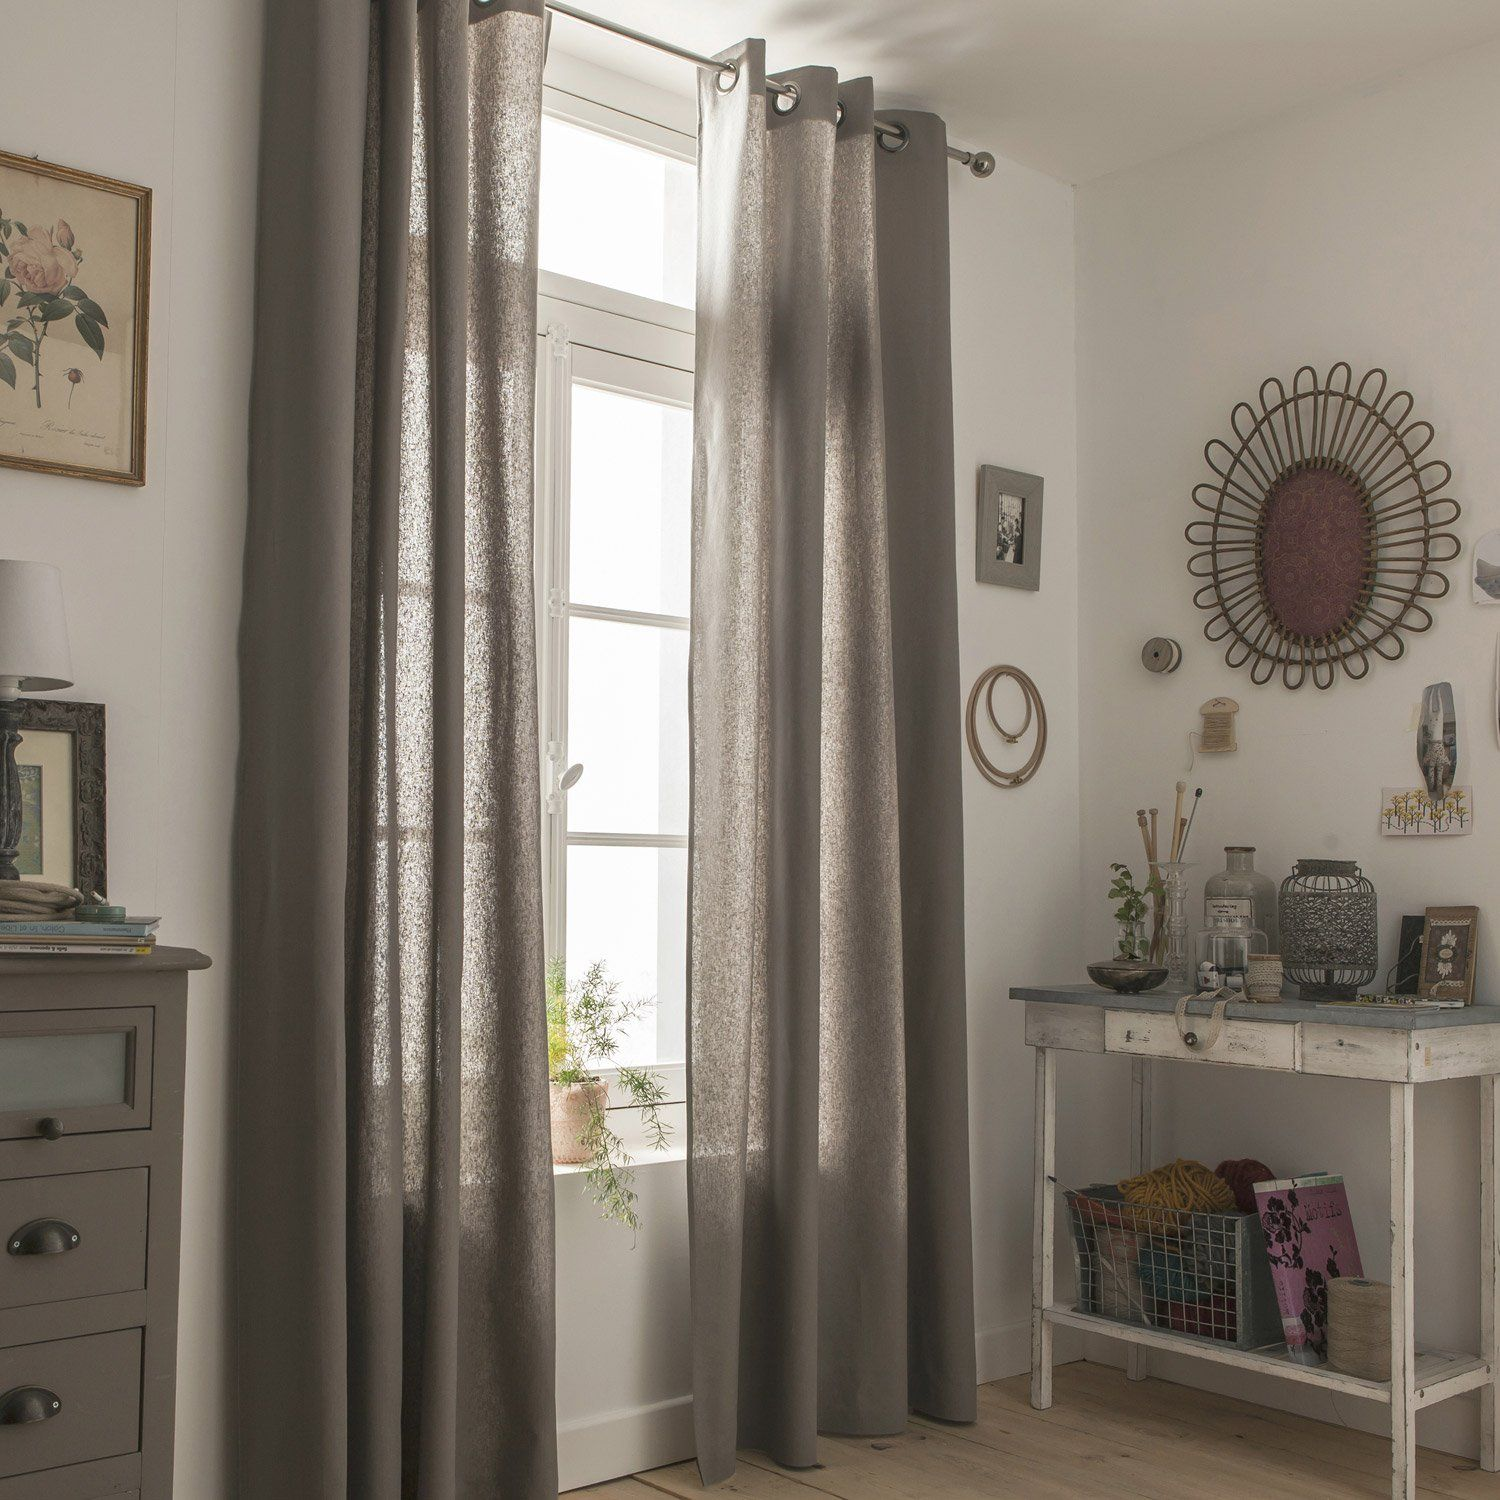 Rideau Tamisant Metis Taupe L 135 X H 260 Cm Rideaux Idee Chambre Idee Deco Maison